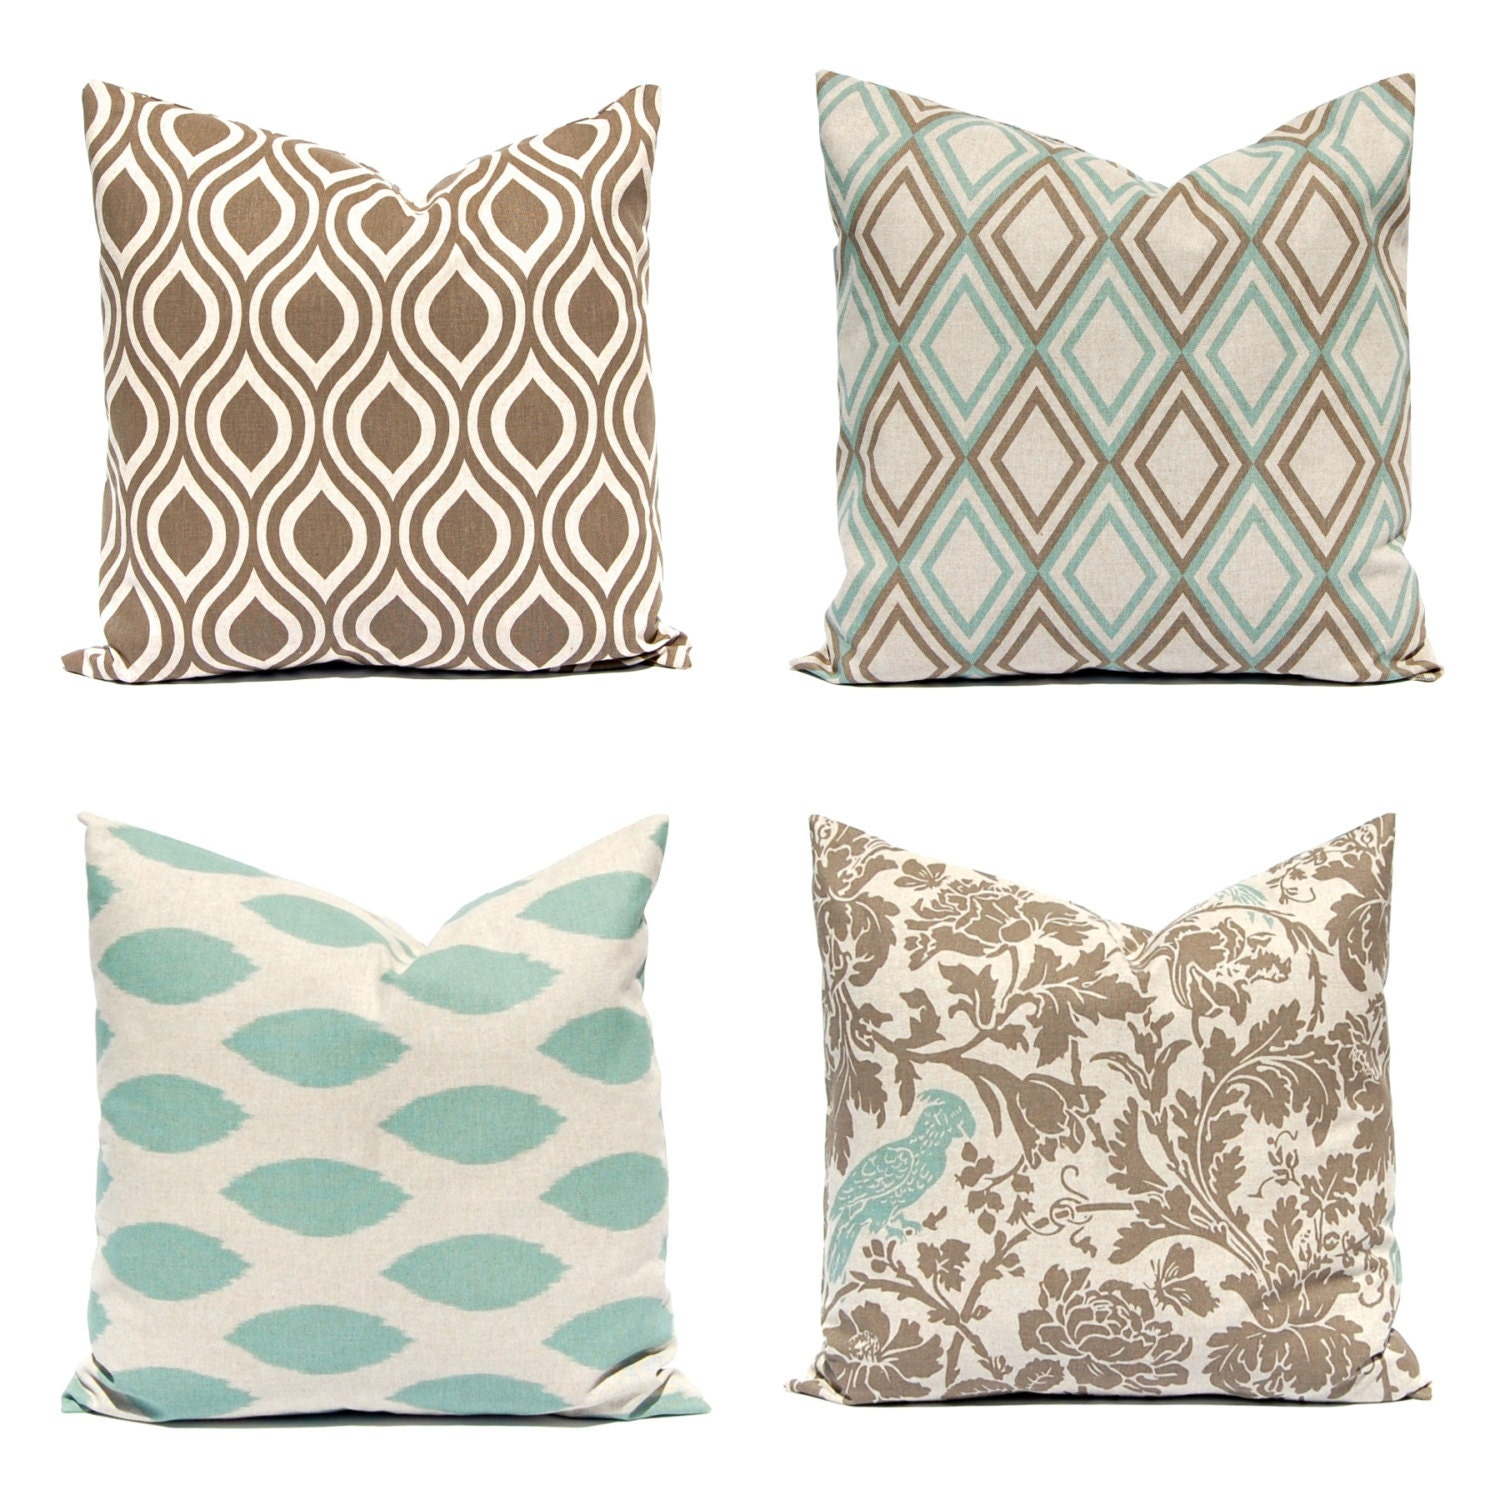 Couch pillow covers sofa pillows seafoam green pillows for Throw pillows for sectional sofa